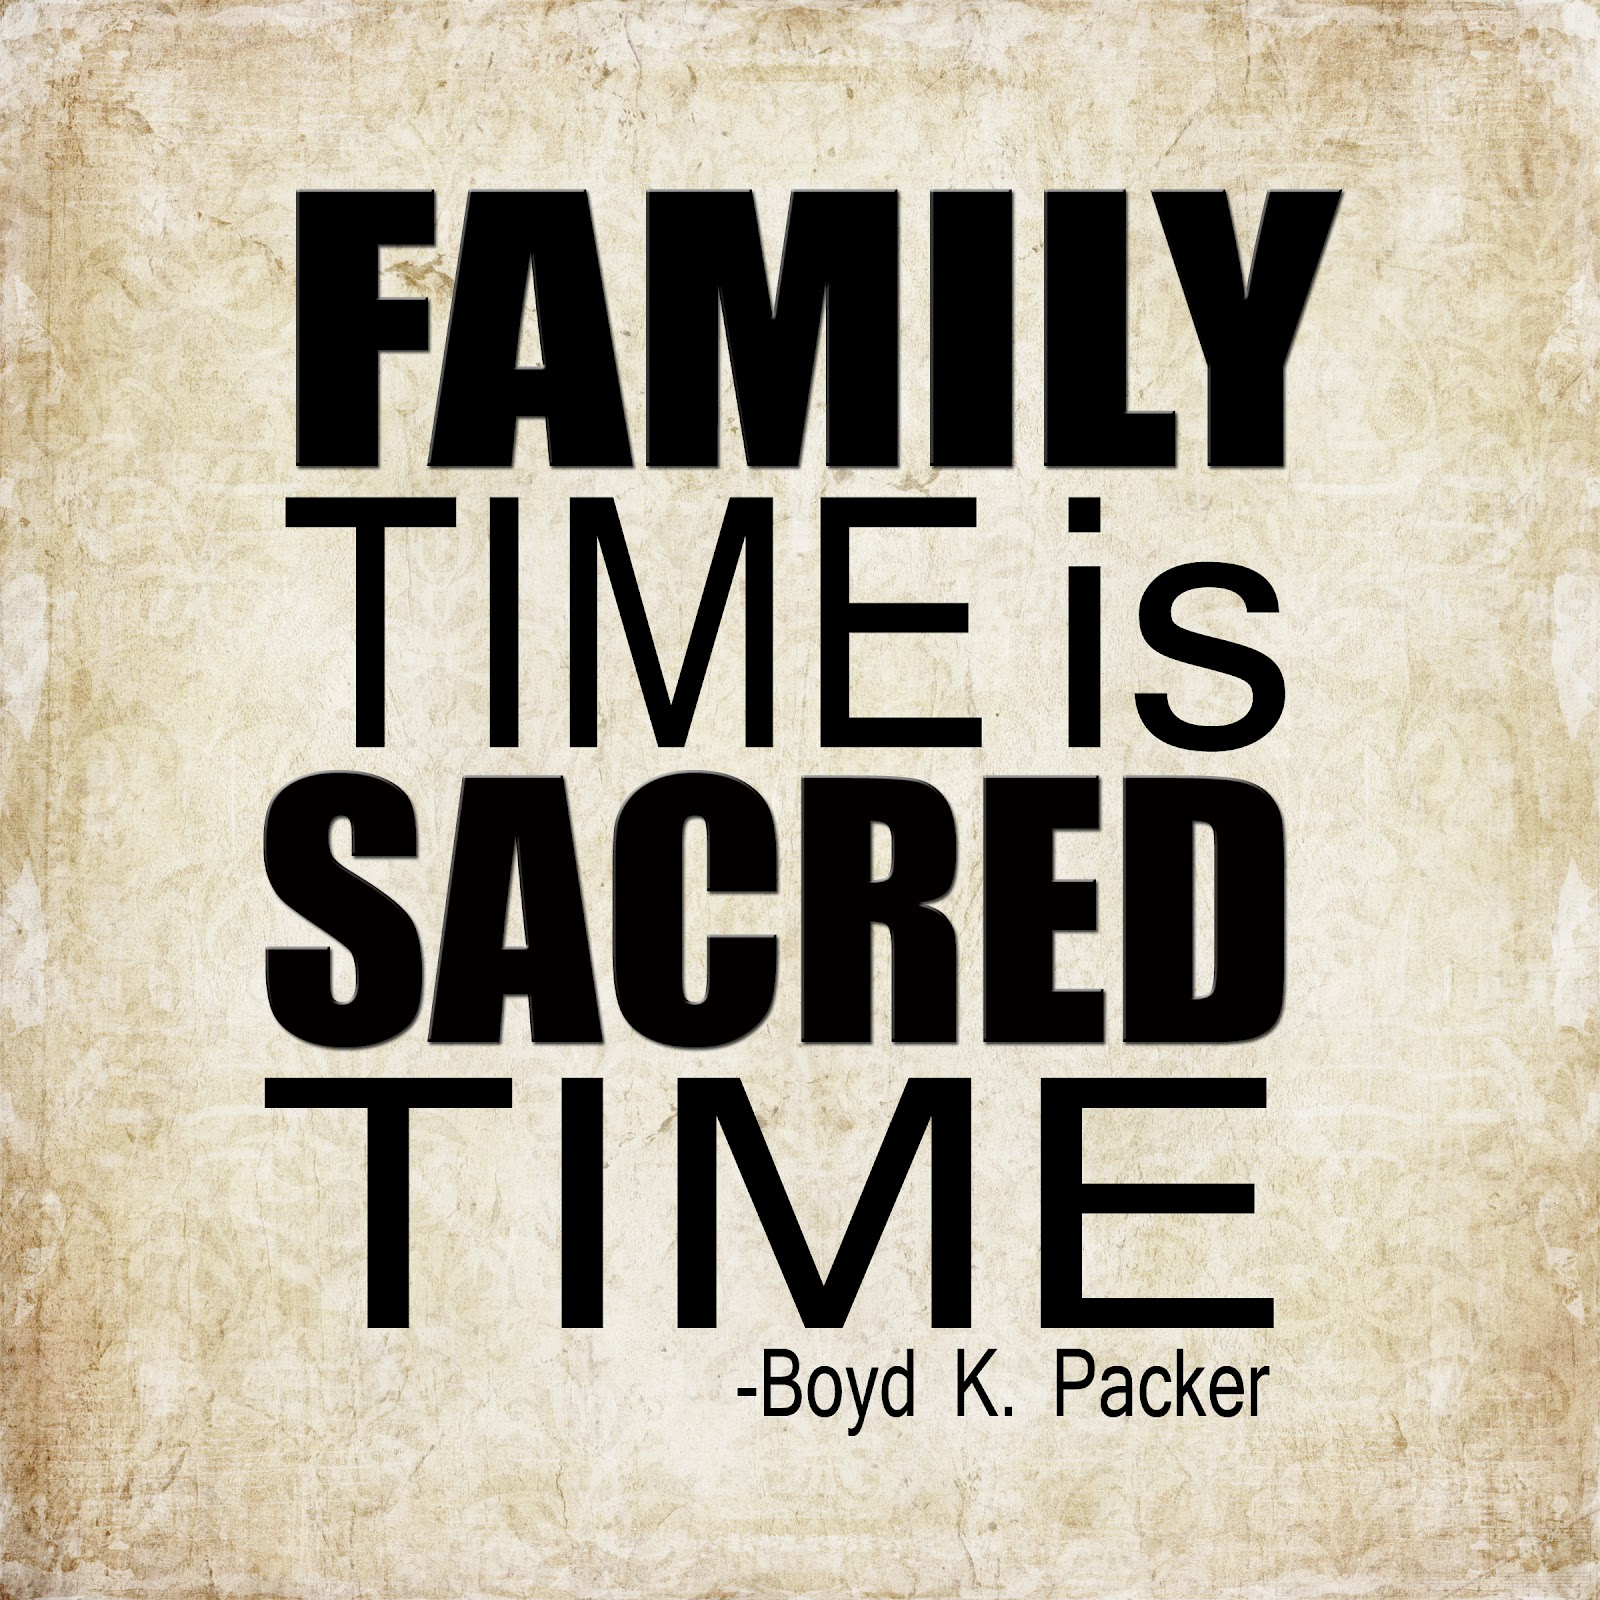 Quotes about Quality family time 27 quotes